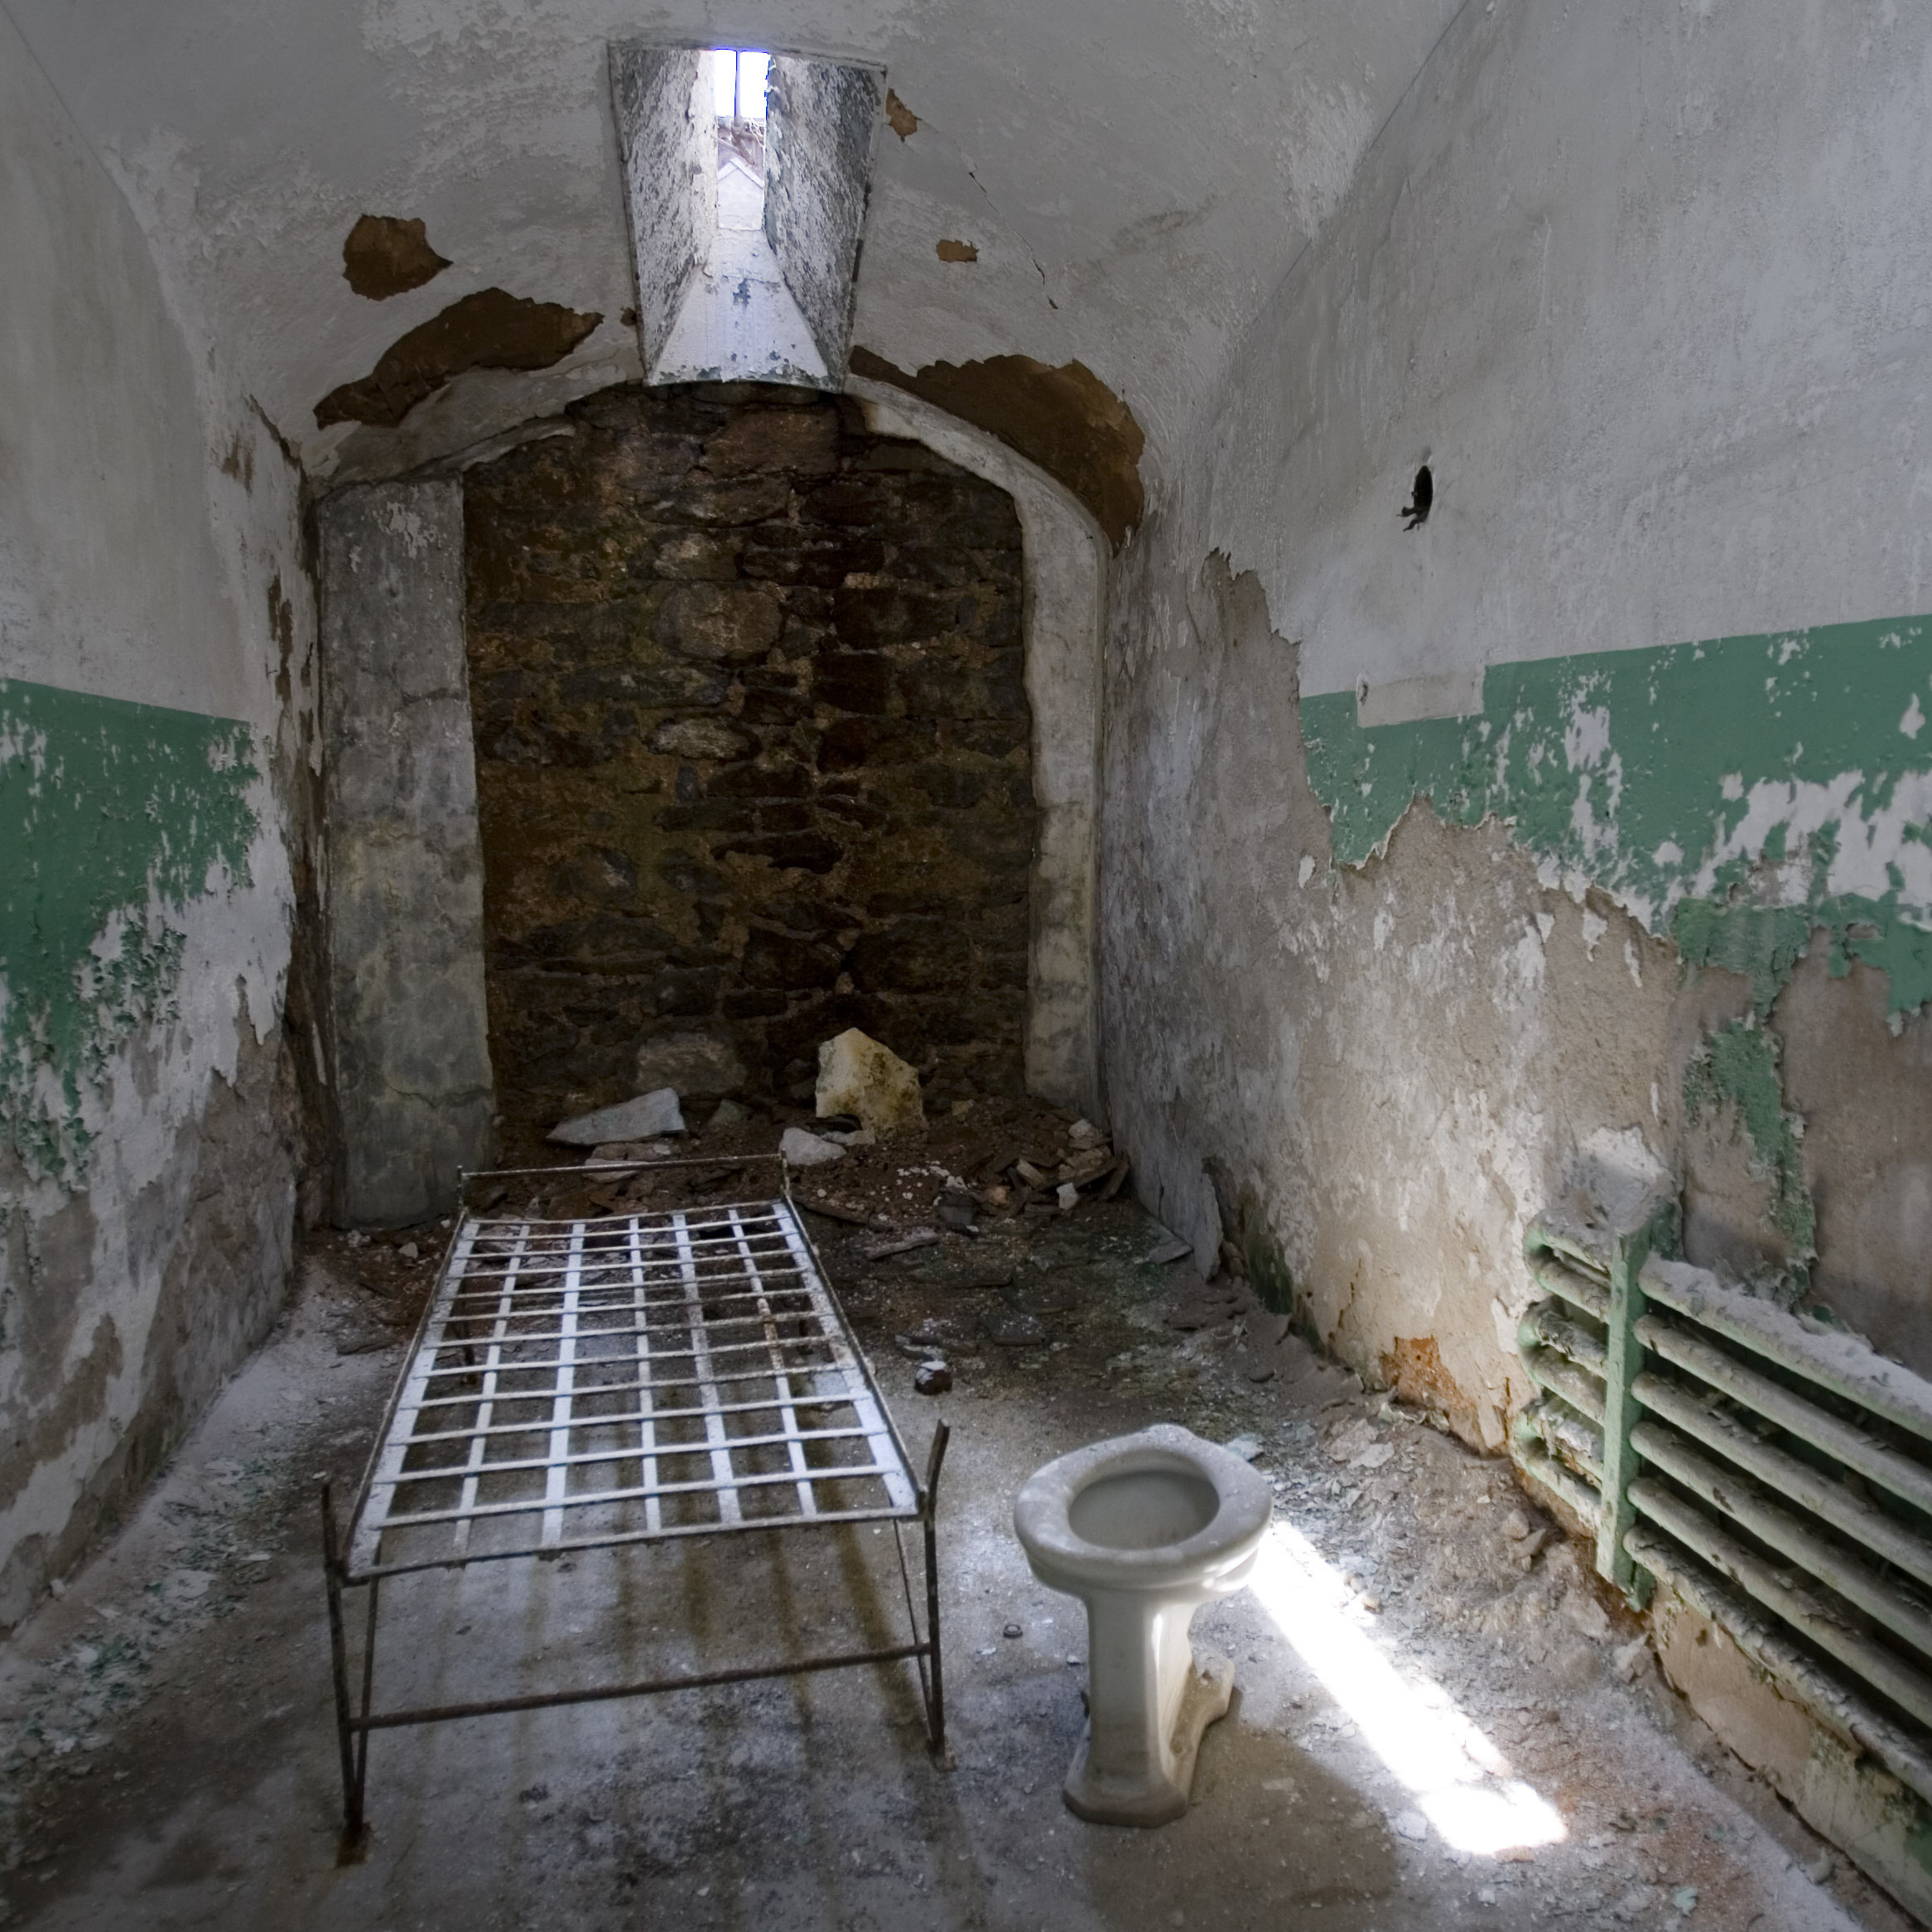 One of the cells at Eastern State Penitentiary in Philadelphia.